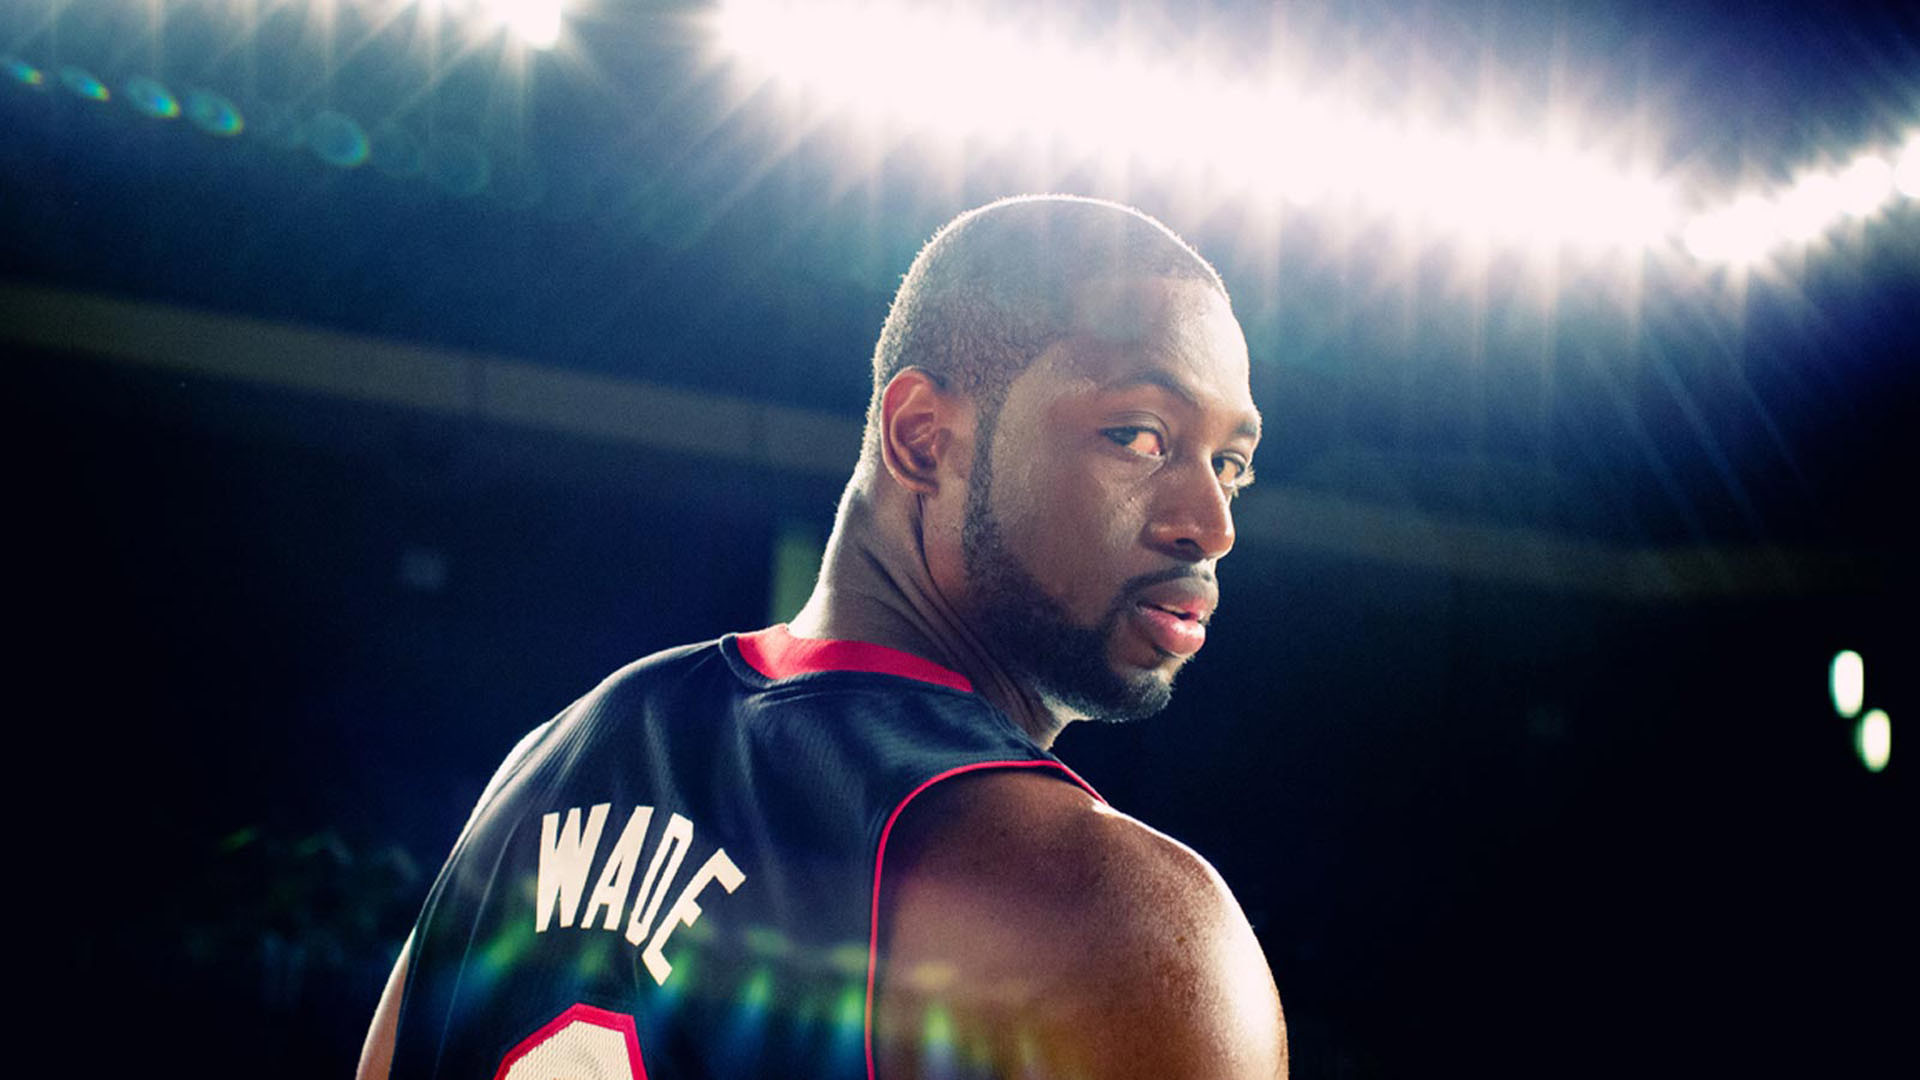 Dwyane Wade Wallpaper 21